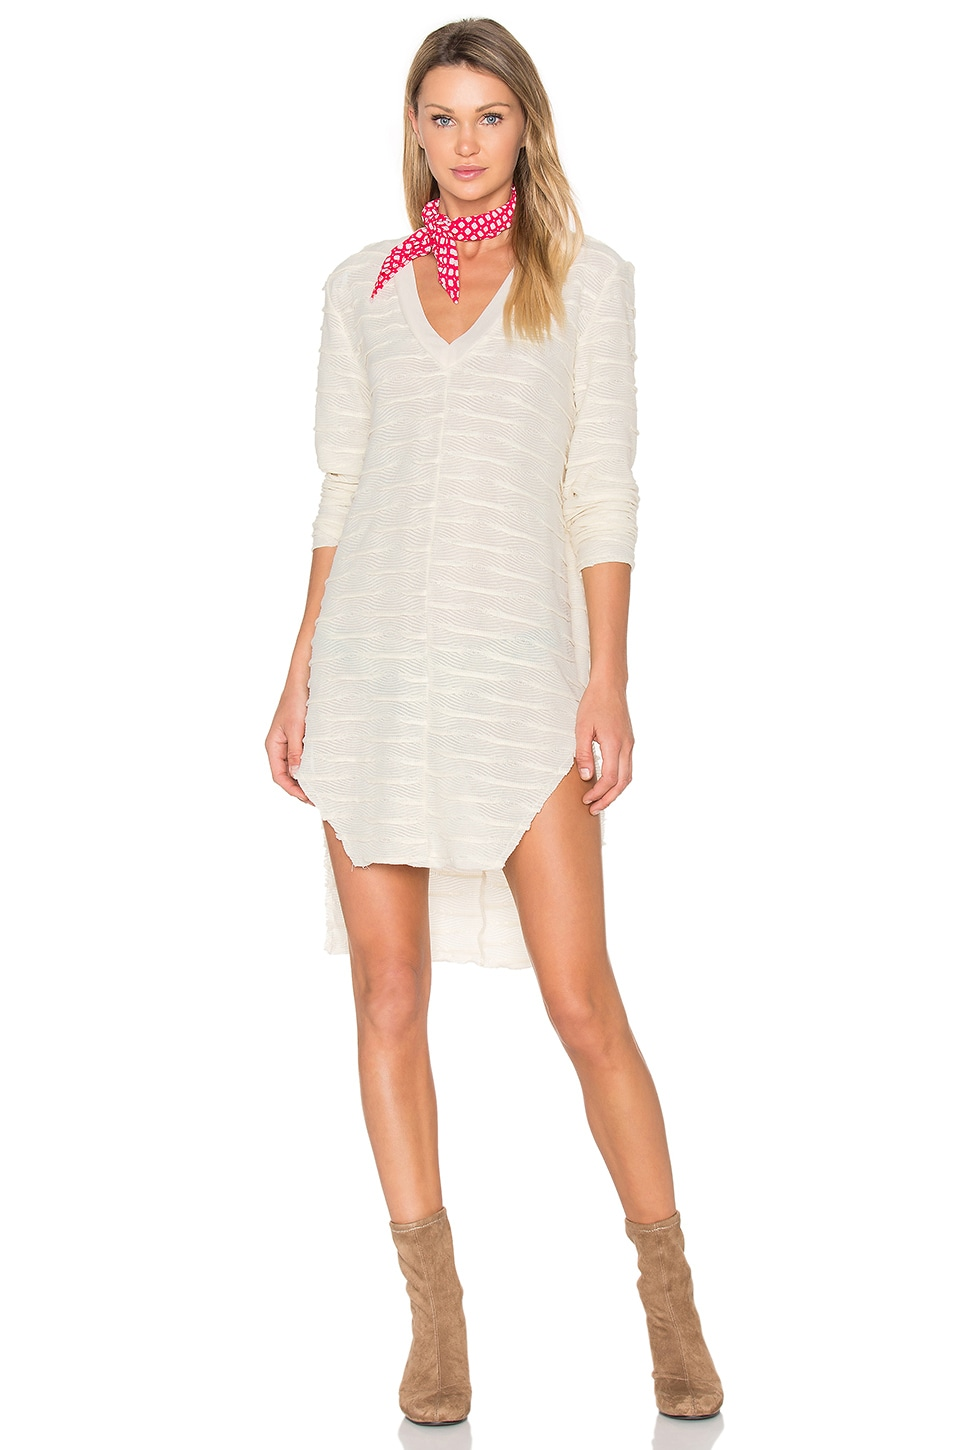 Changing Times Dress by Somedays Lovin